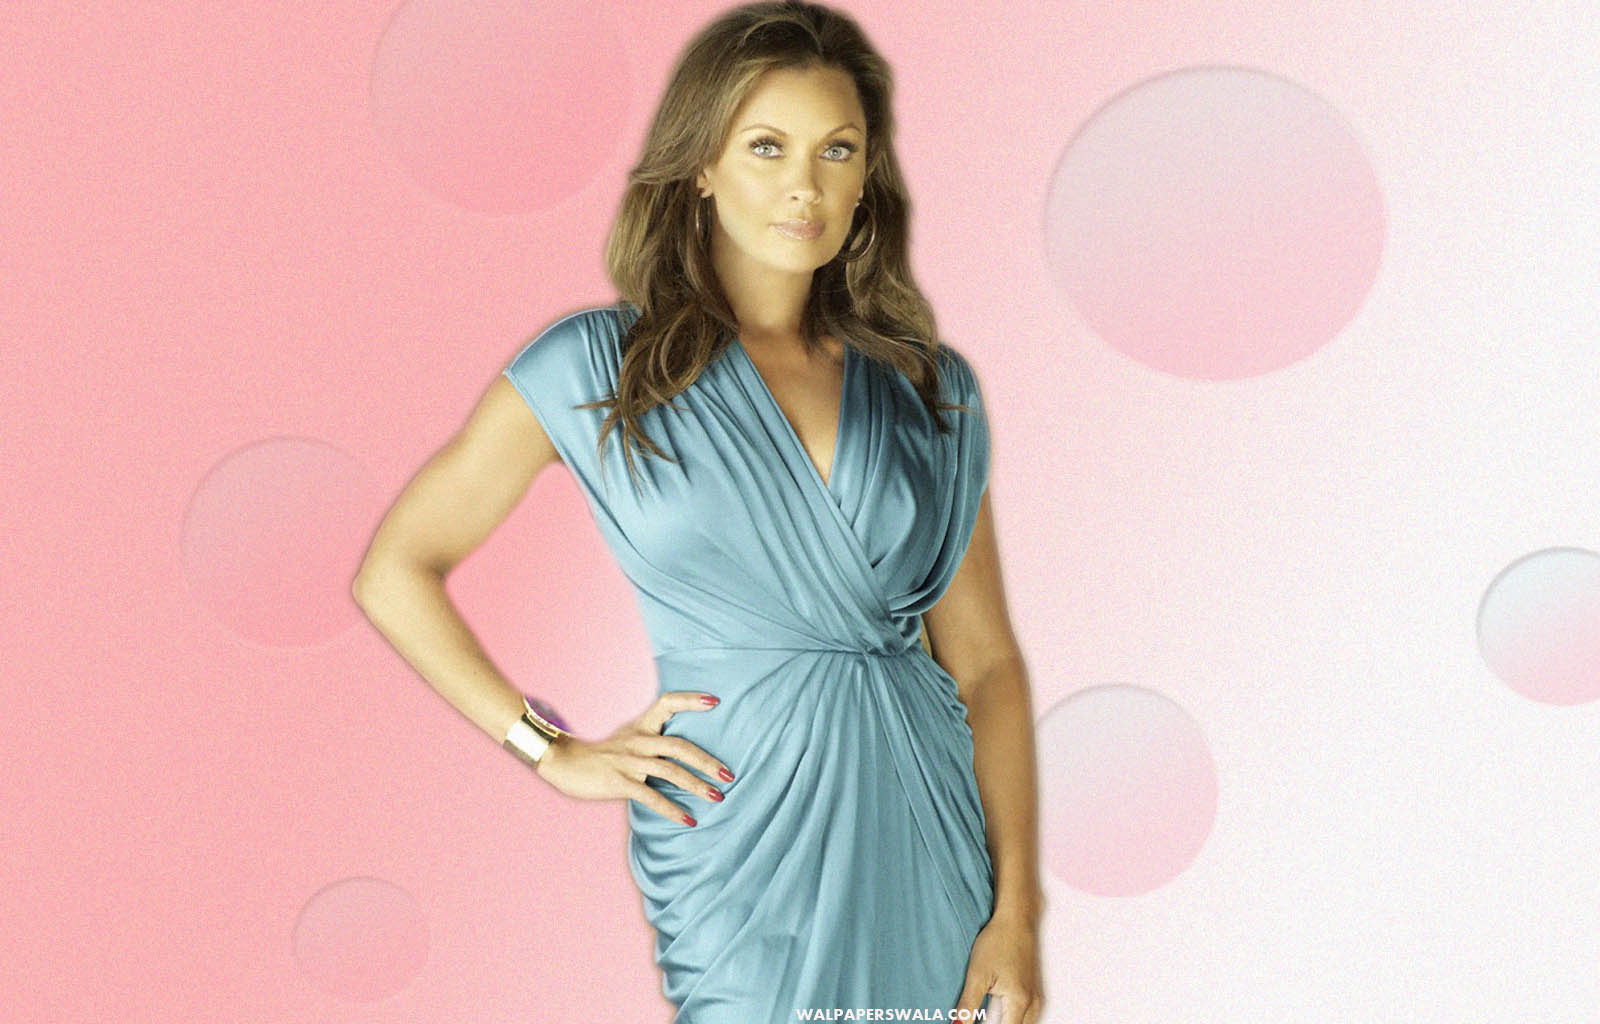 Good Quality Vanessa Williams  HD Wallpaper Wallpaper